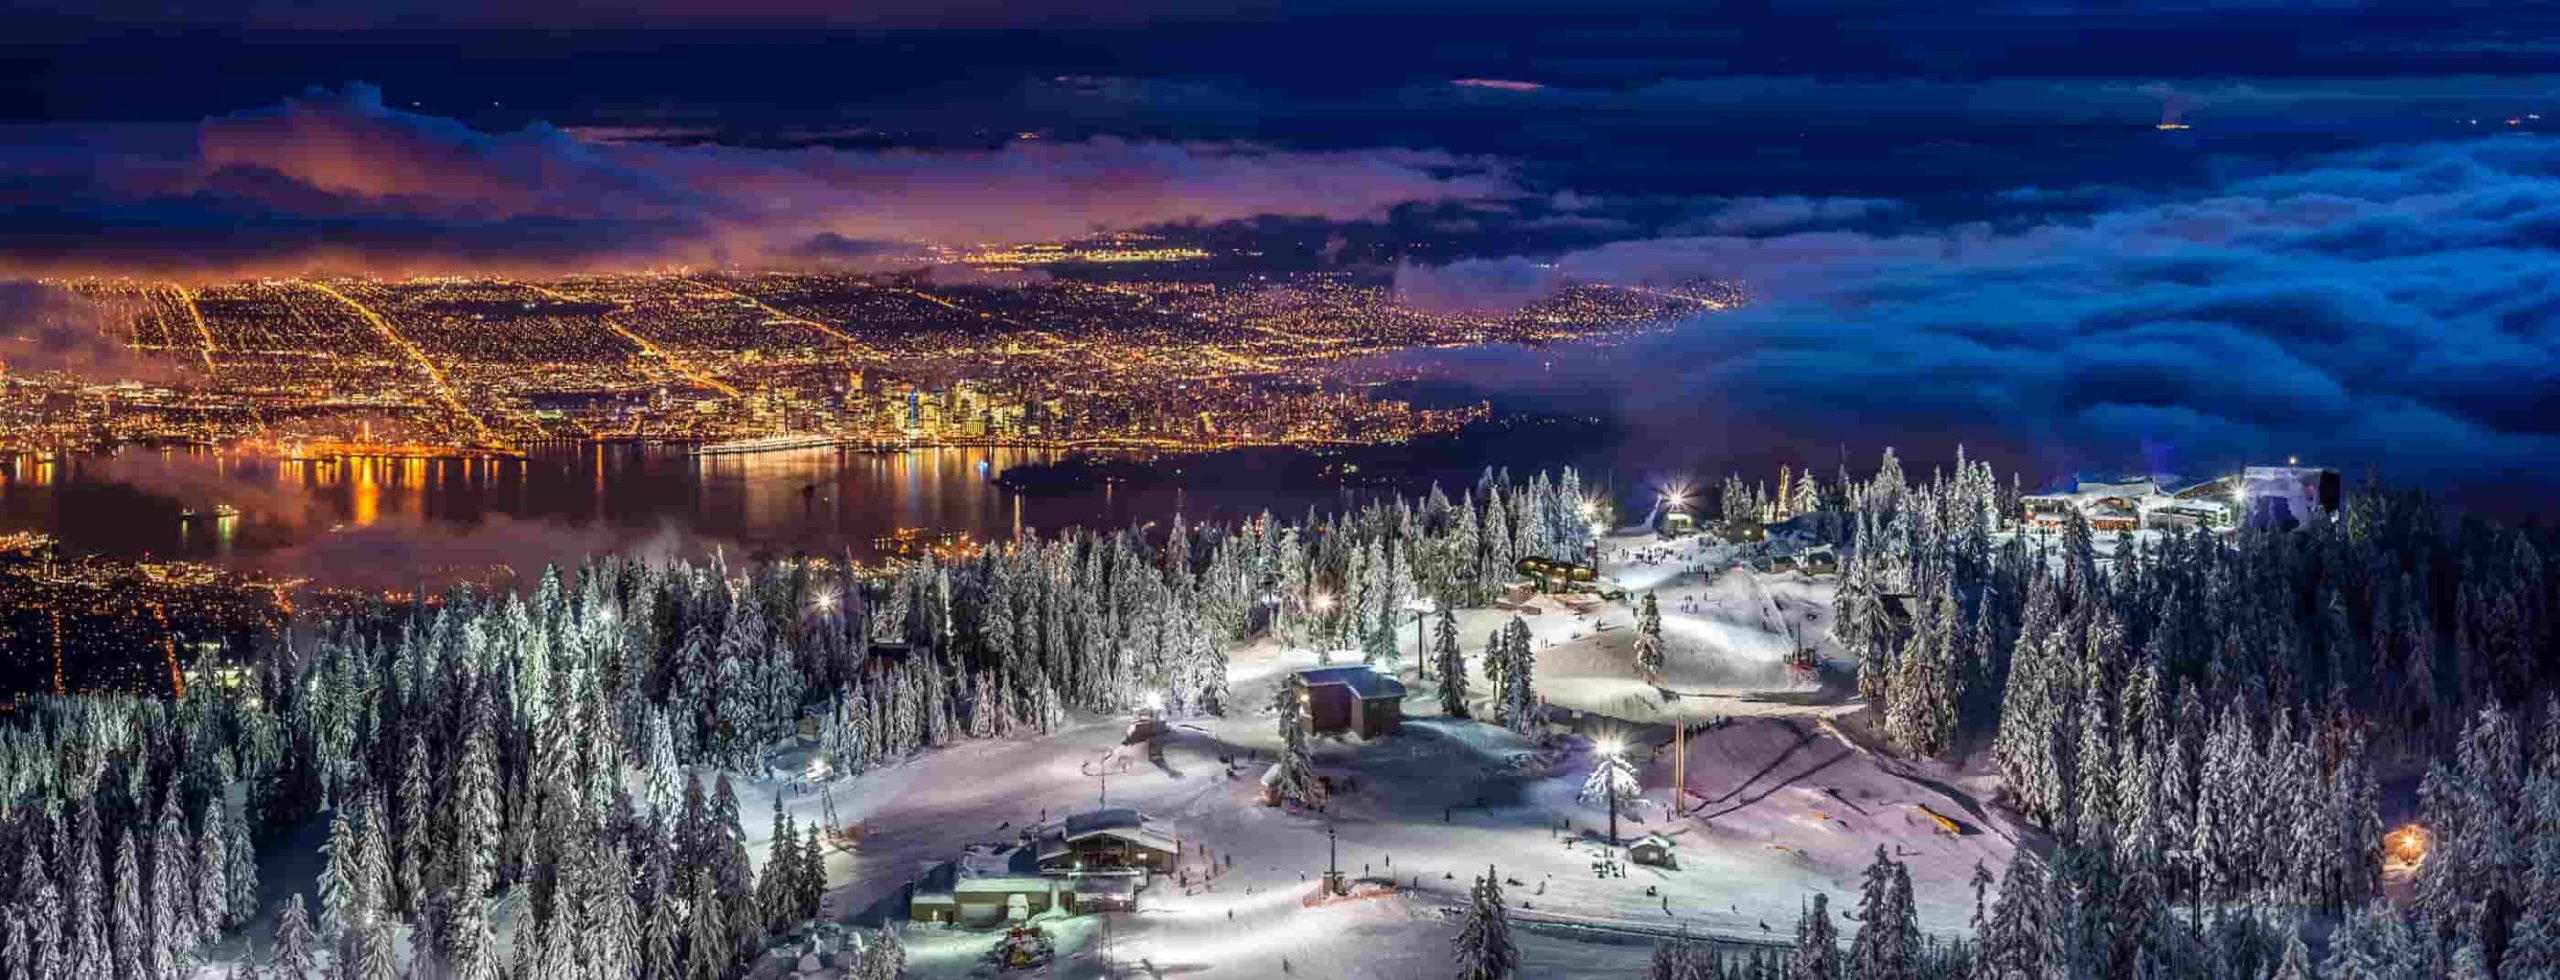 Snowy night in Vancouver